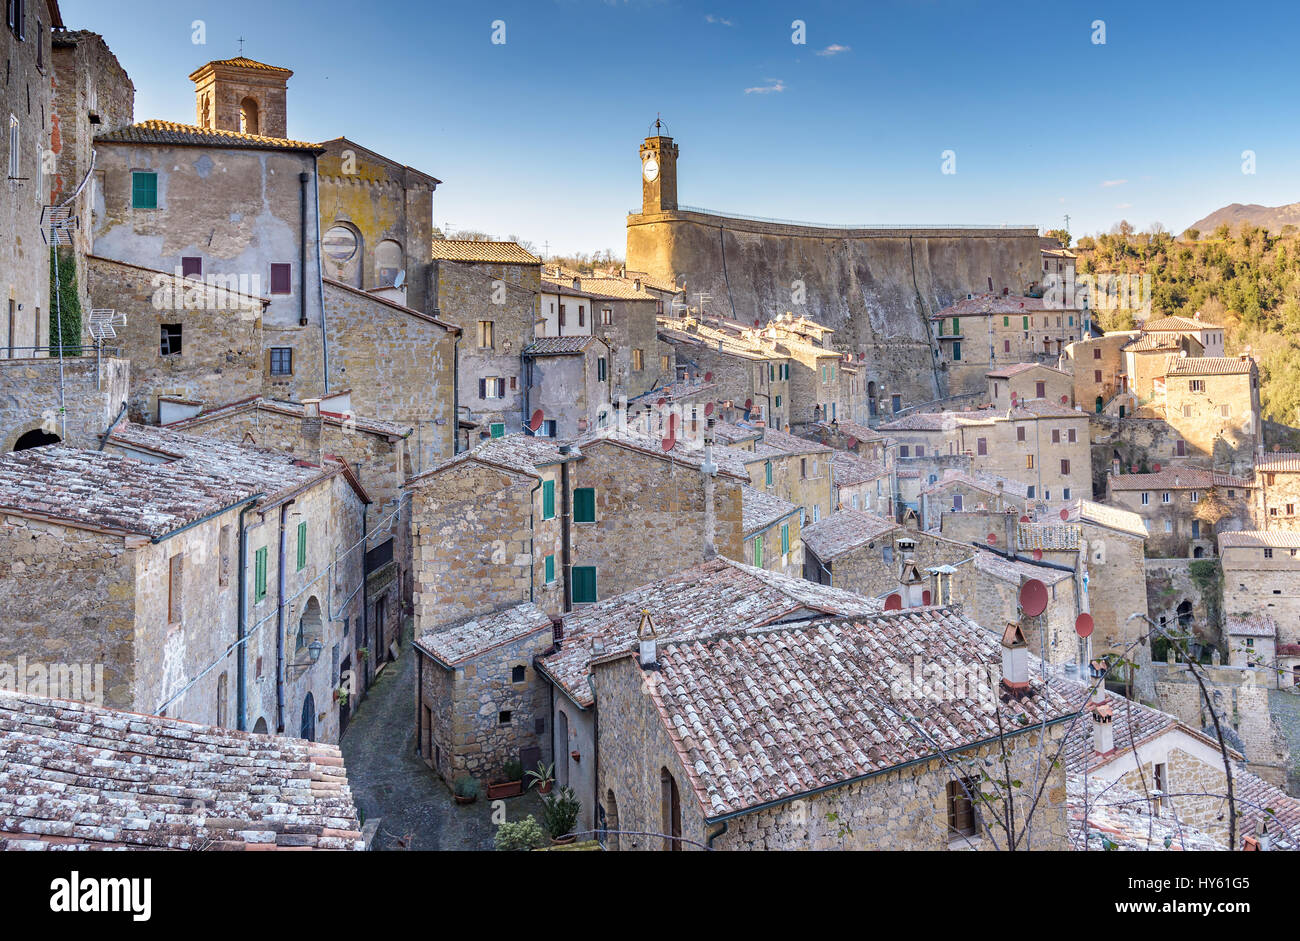 old town of Sorano, Grosseto province, Tuscany, Italy - Stock Image